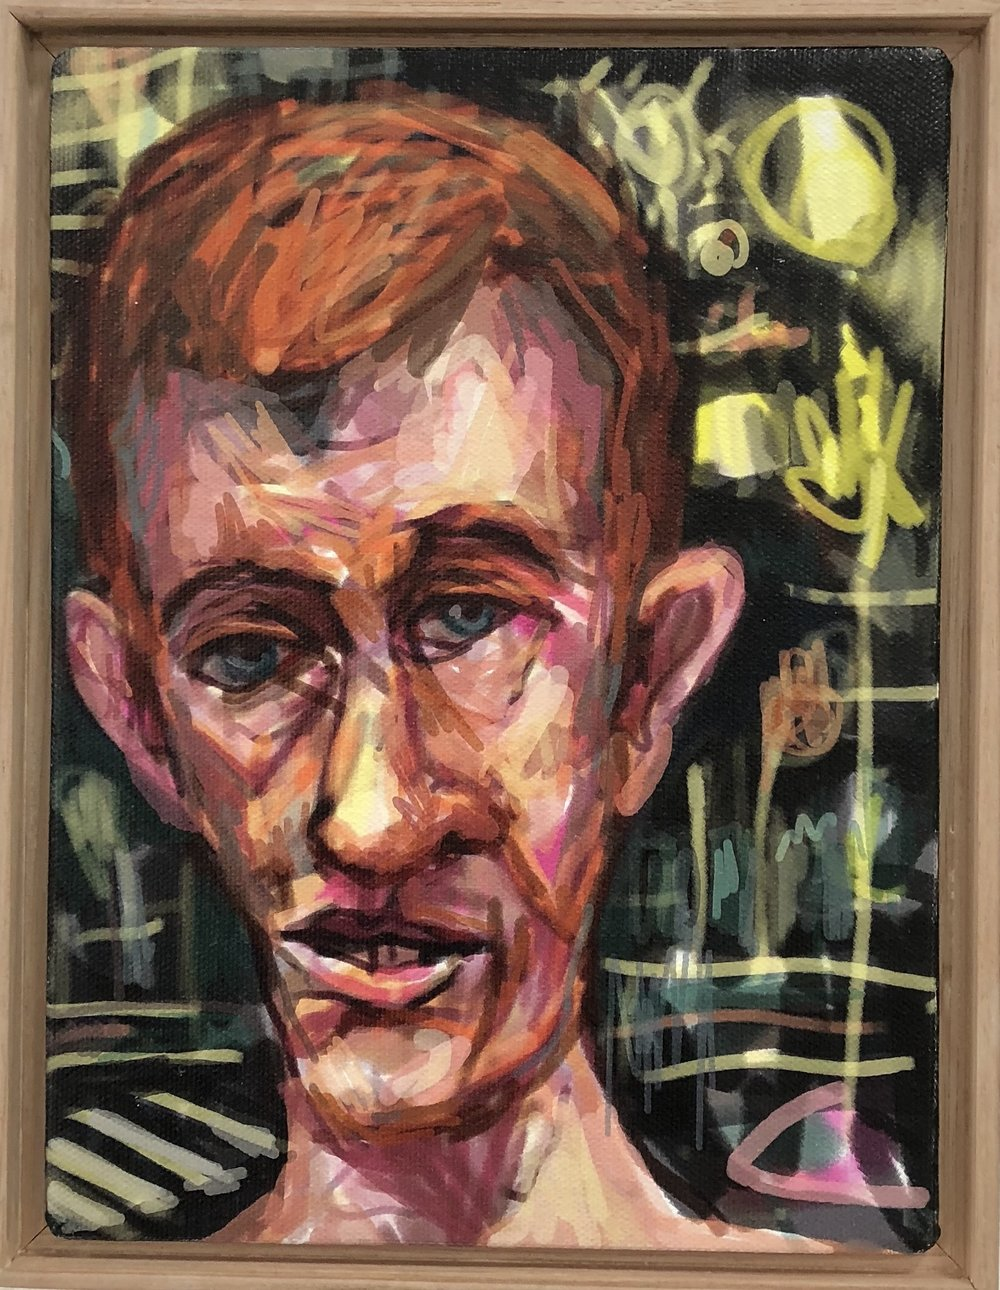 Peter Lankas  Scraped Ronnie  2018 ipad drawing, archival print on canvas 23.5 x 18cm framed Artist Proof + edition of 10 $285.00 each (AP + 10 available)  edition includes framing